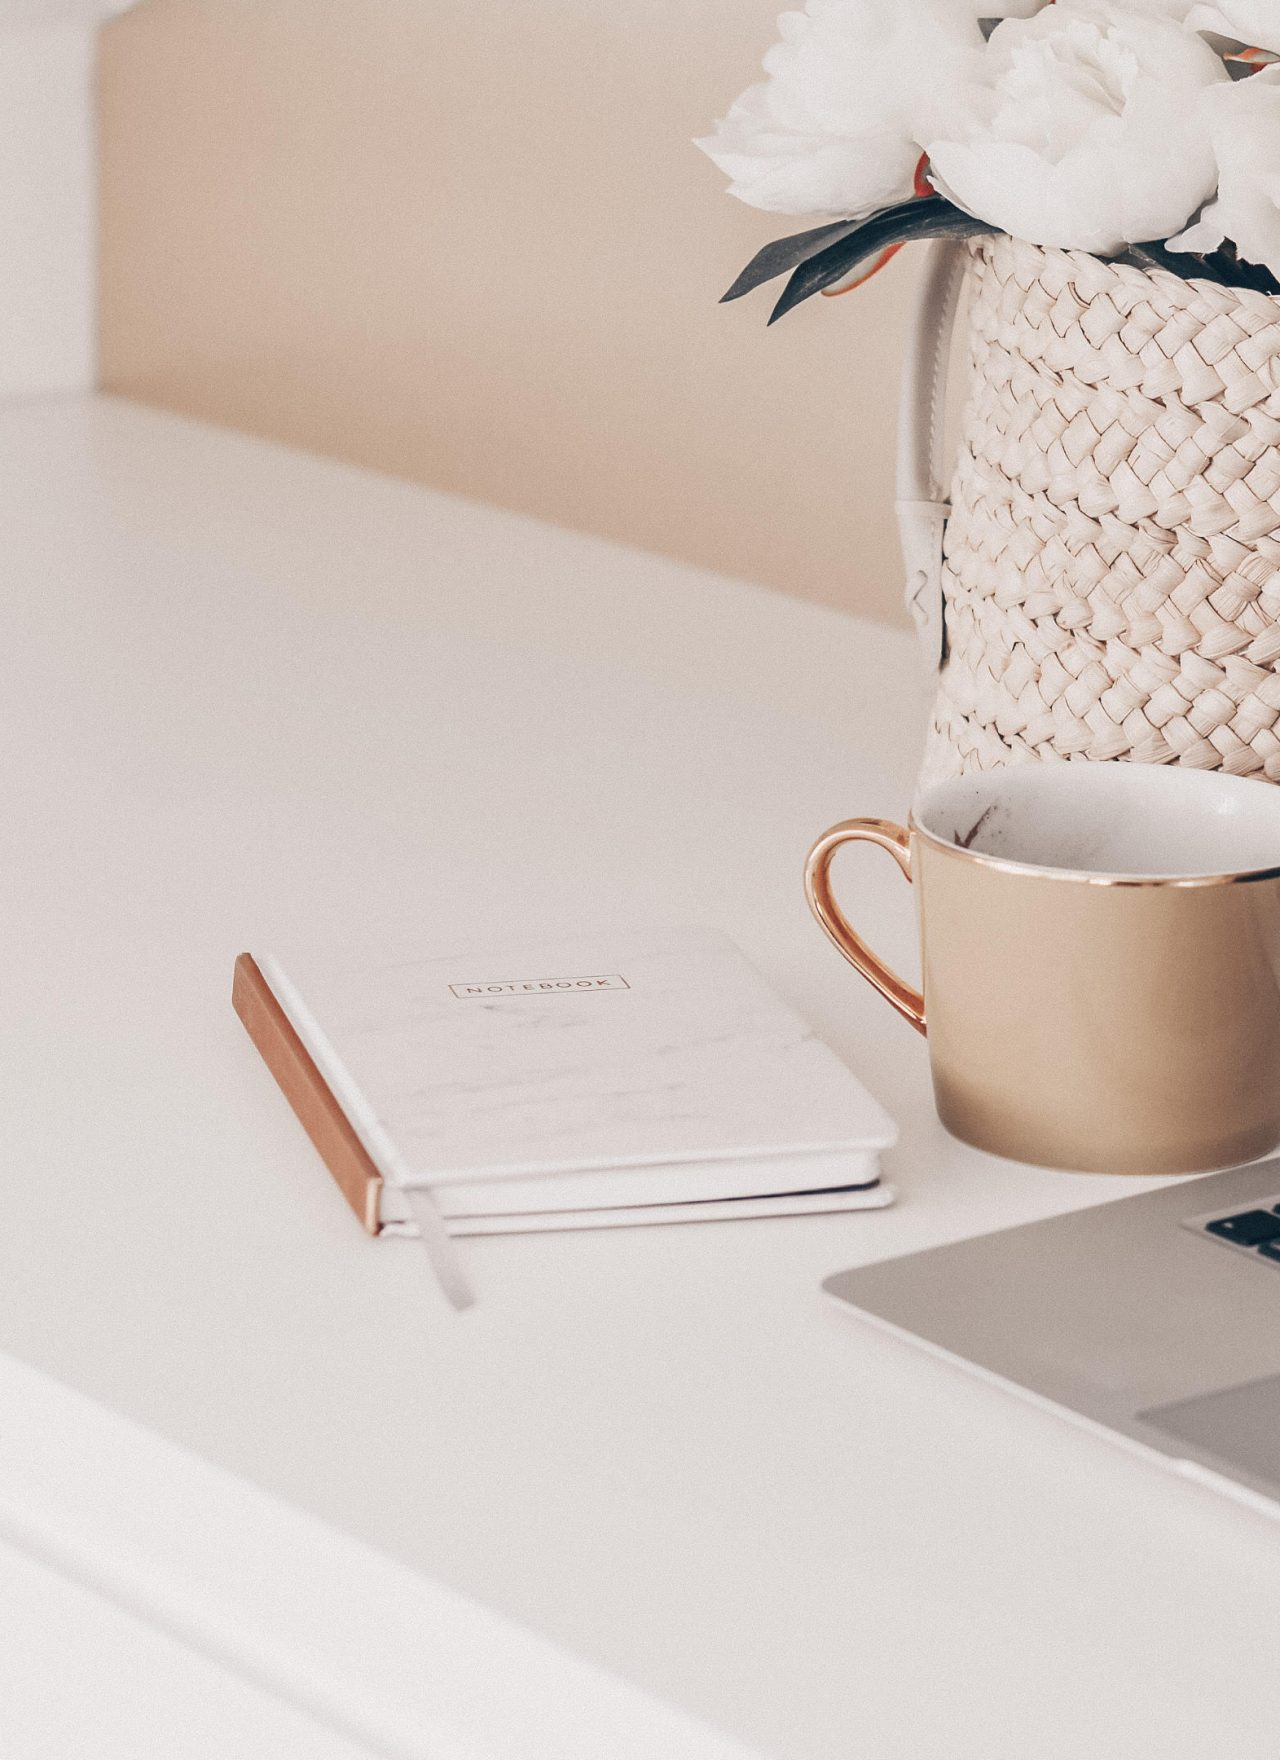 9 Things Every Blog Post Needs